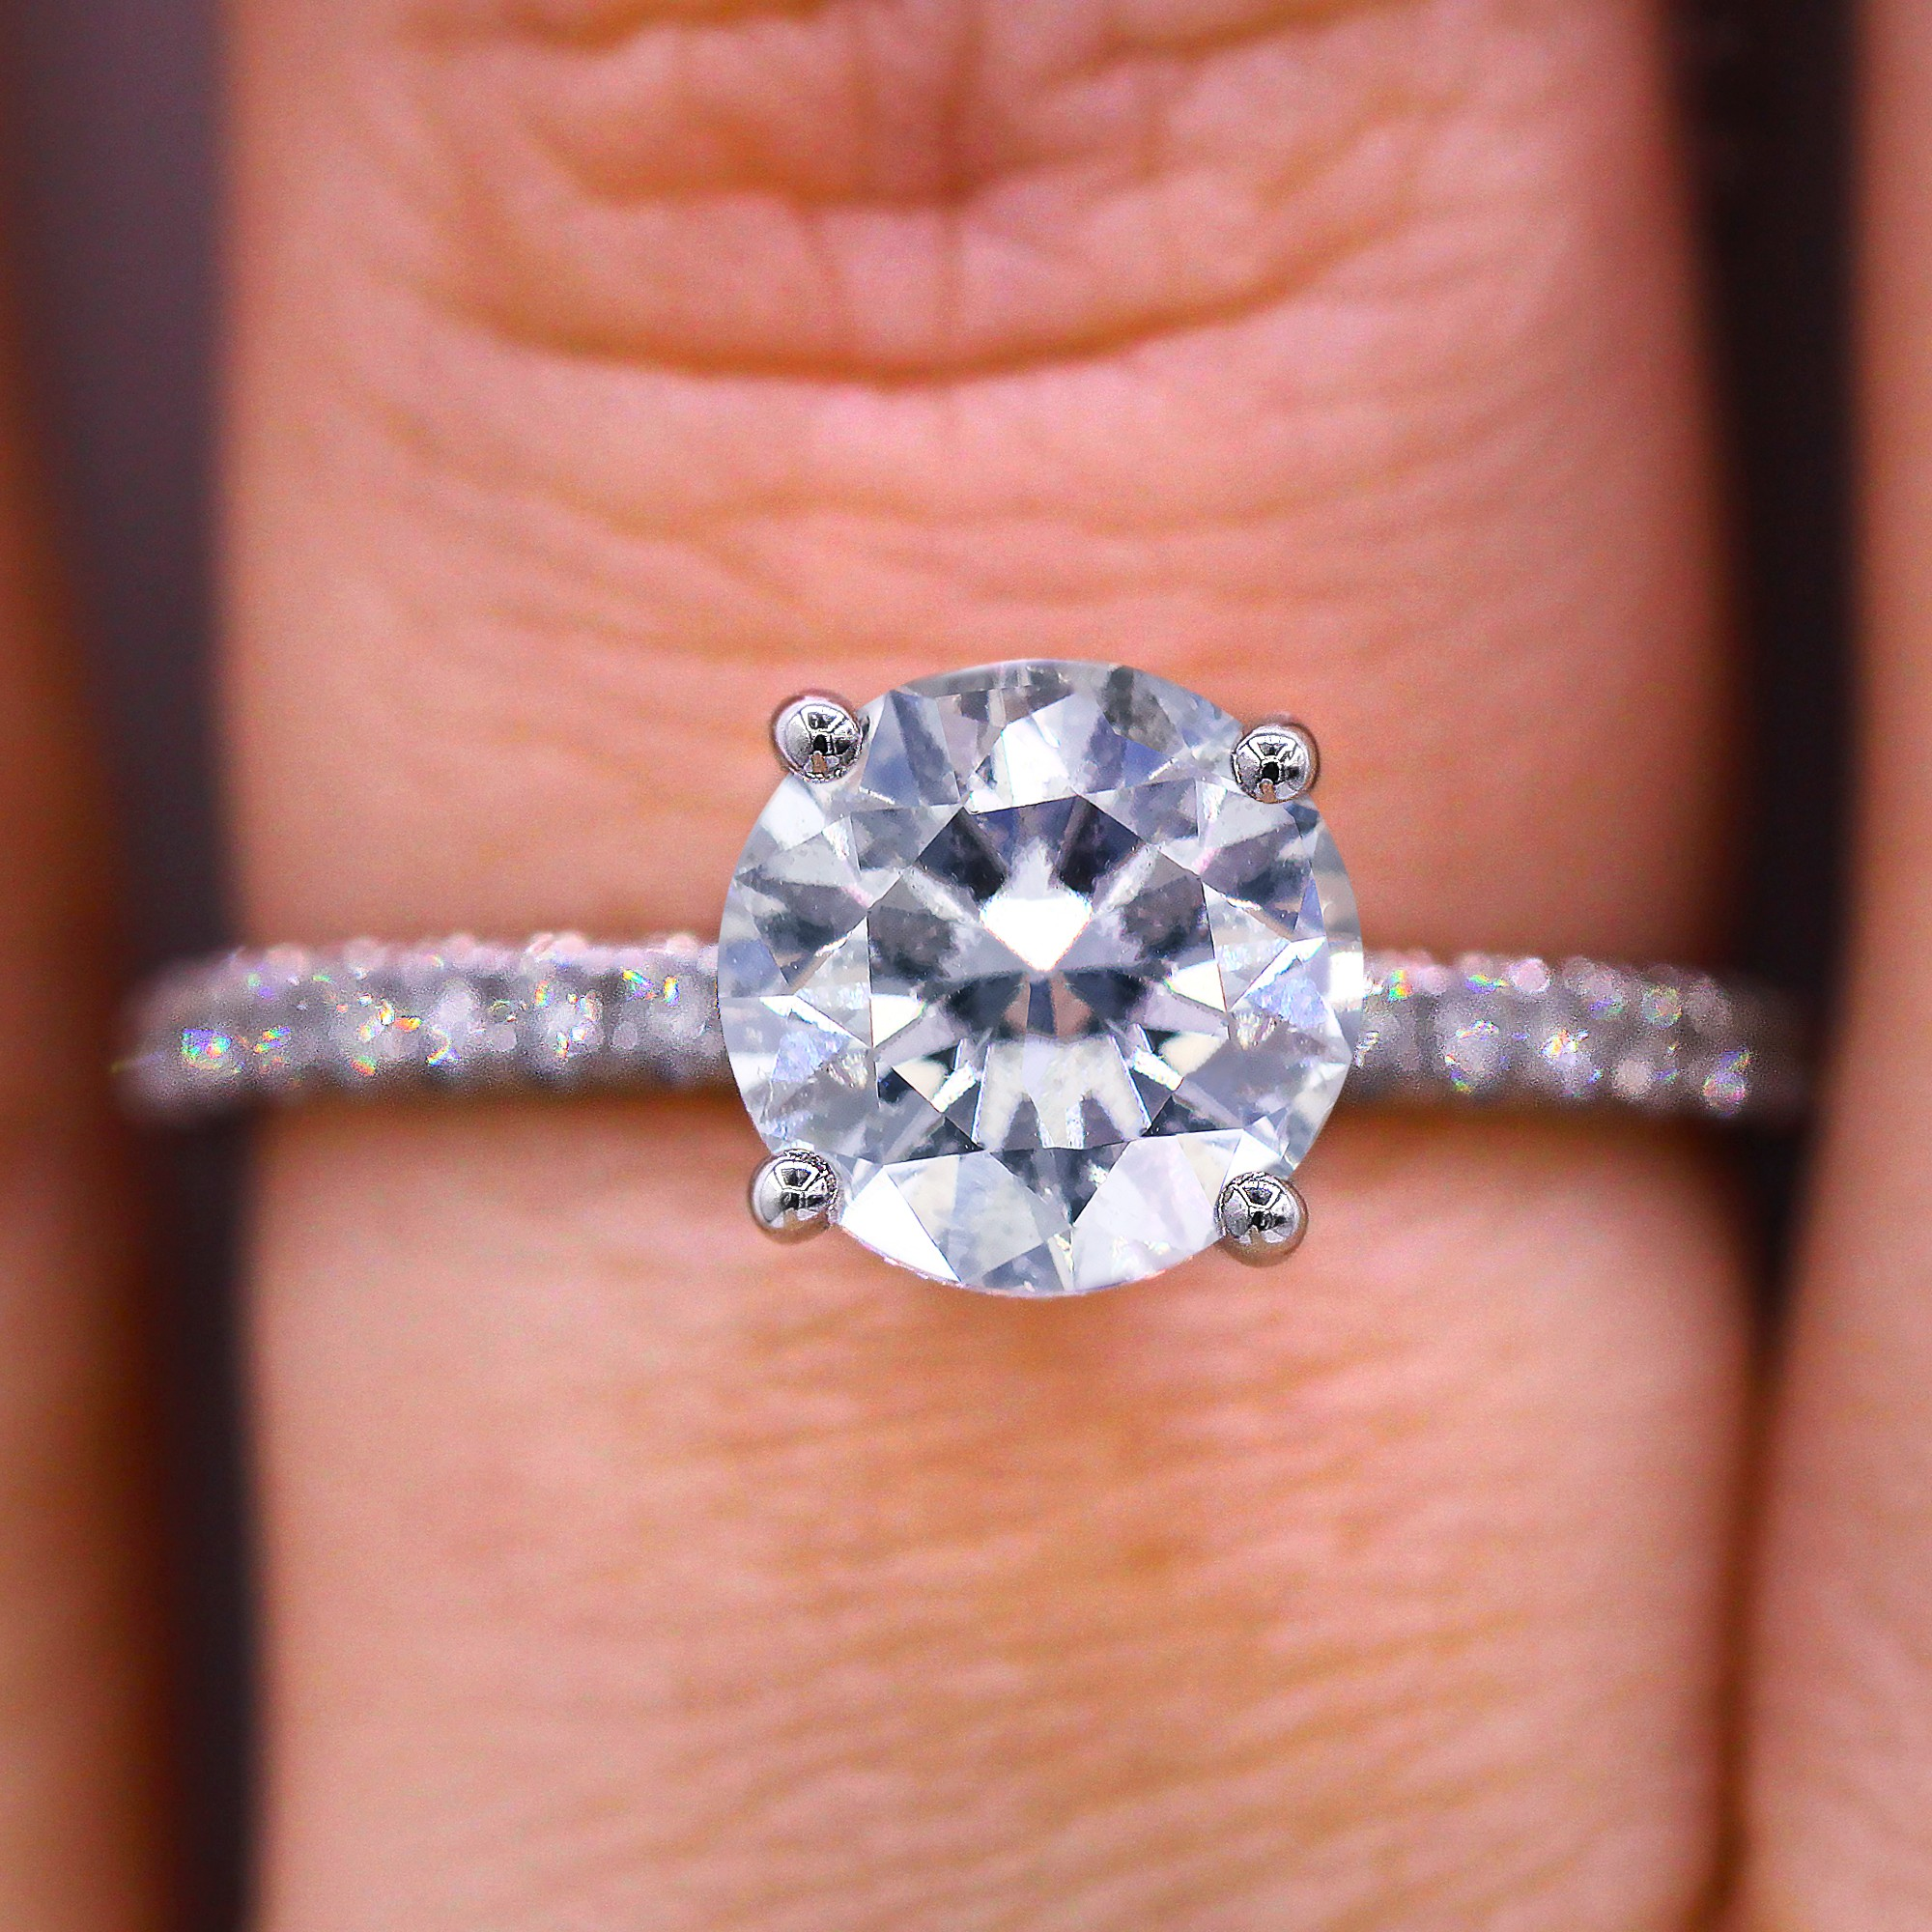 French Pave set round cut diamond ring